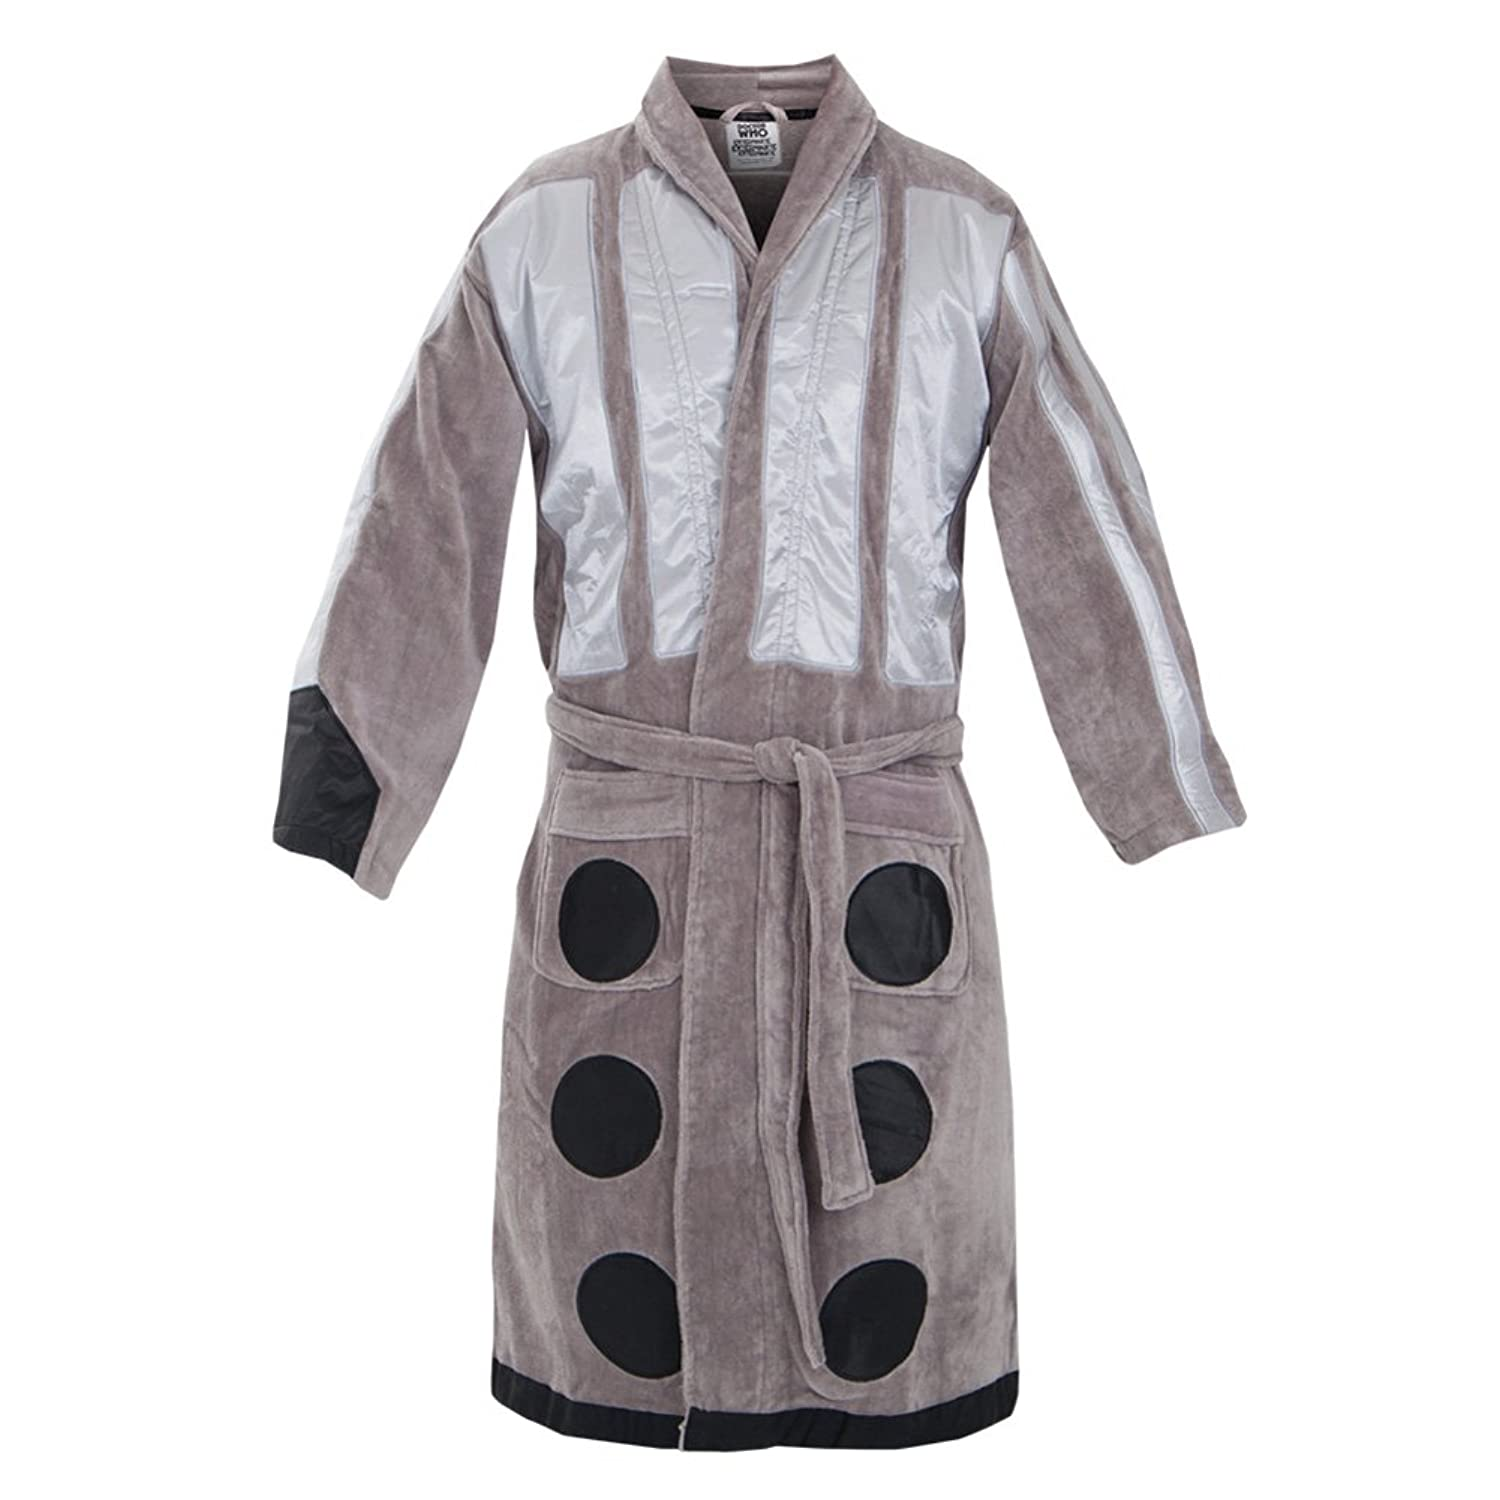 Dr. Who Silver Dalek Inspired Terry Velour Robe for men